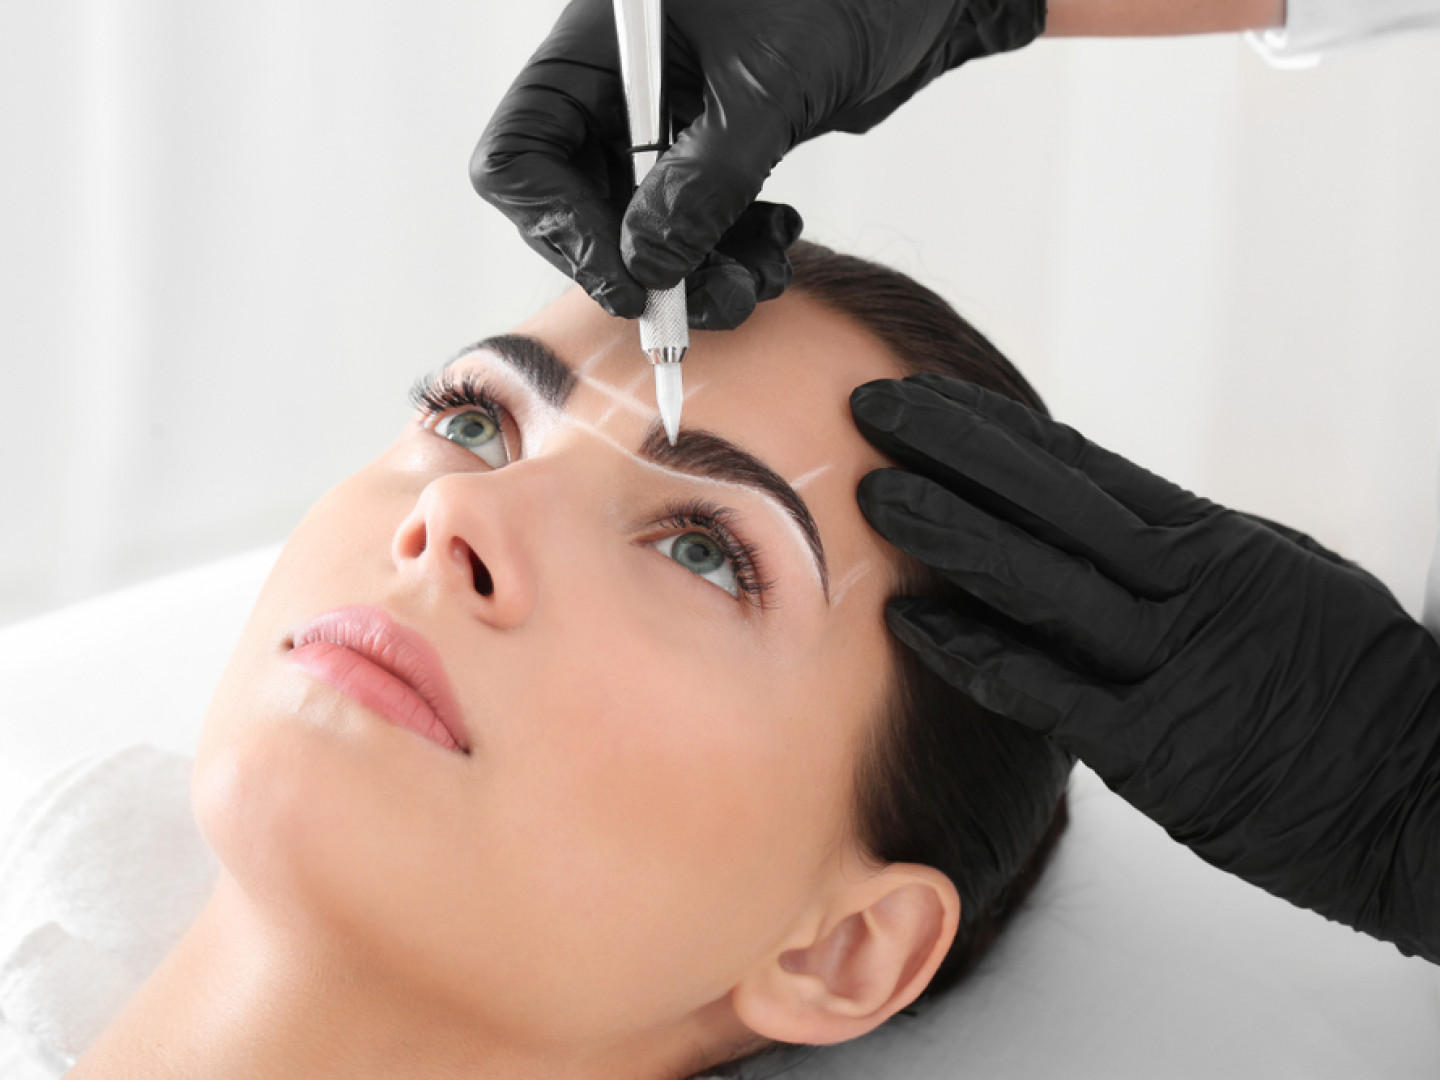 Allure specializes in natural microblading techniques to improve the fullness and shape of the brows